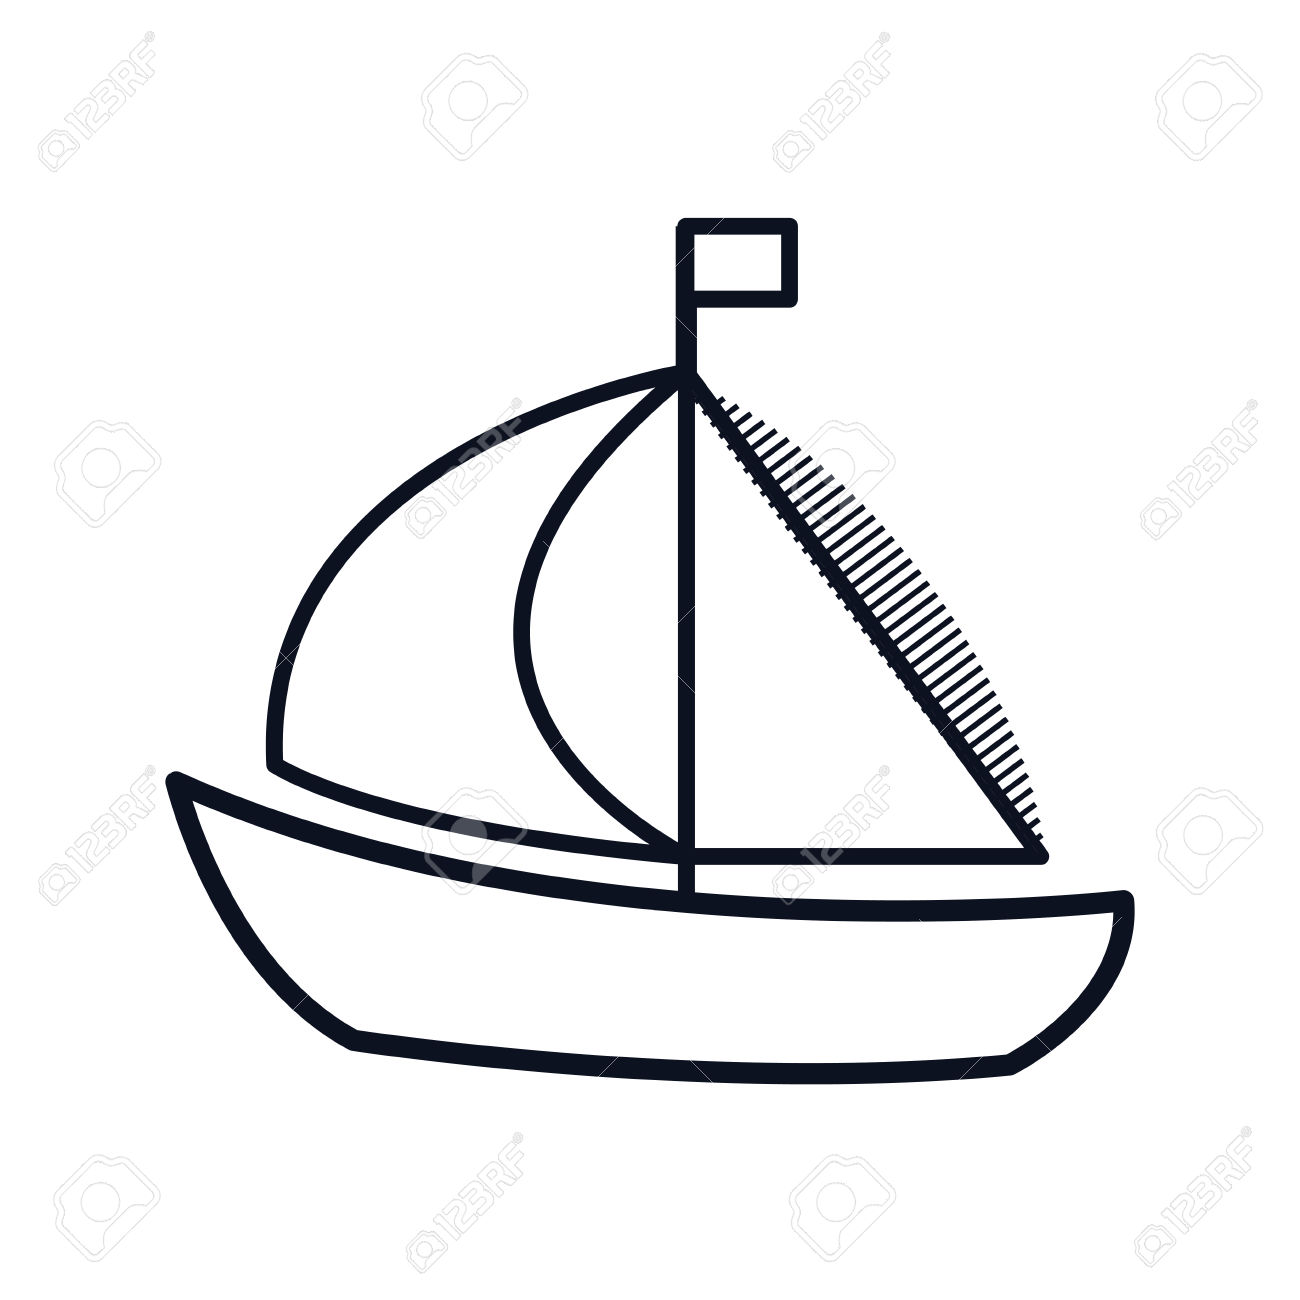 Sailboat Maritime Frame Icon Vector Illustration Design Royalty.